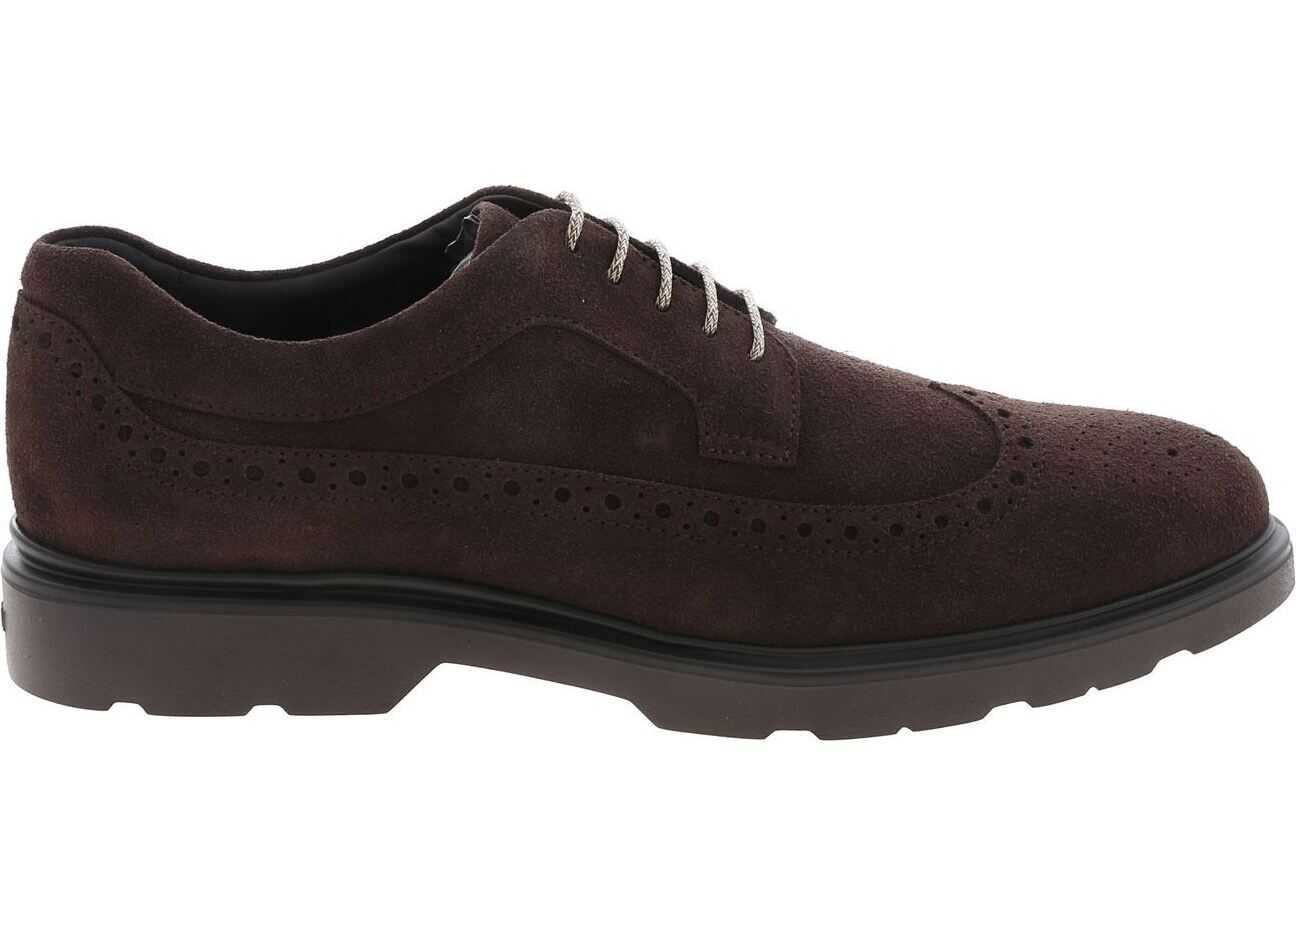 H393 Suede Leather Derby In Brown thumbnail